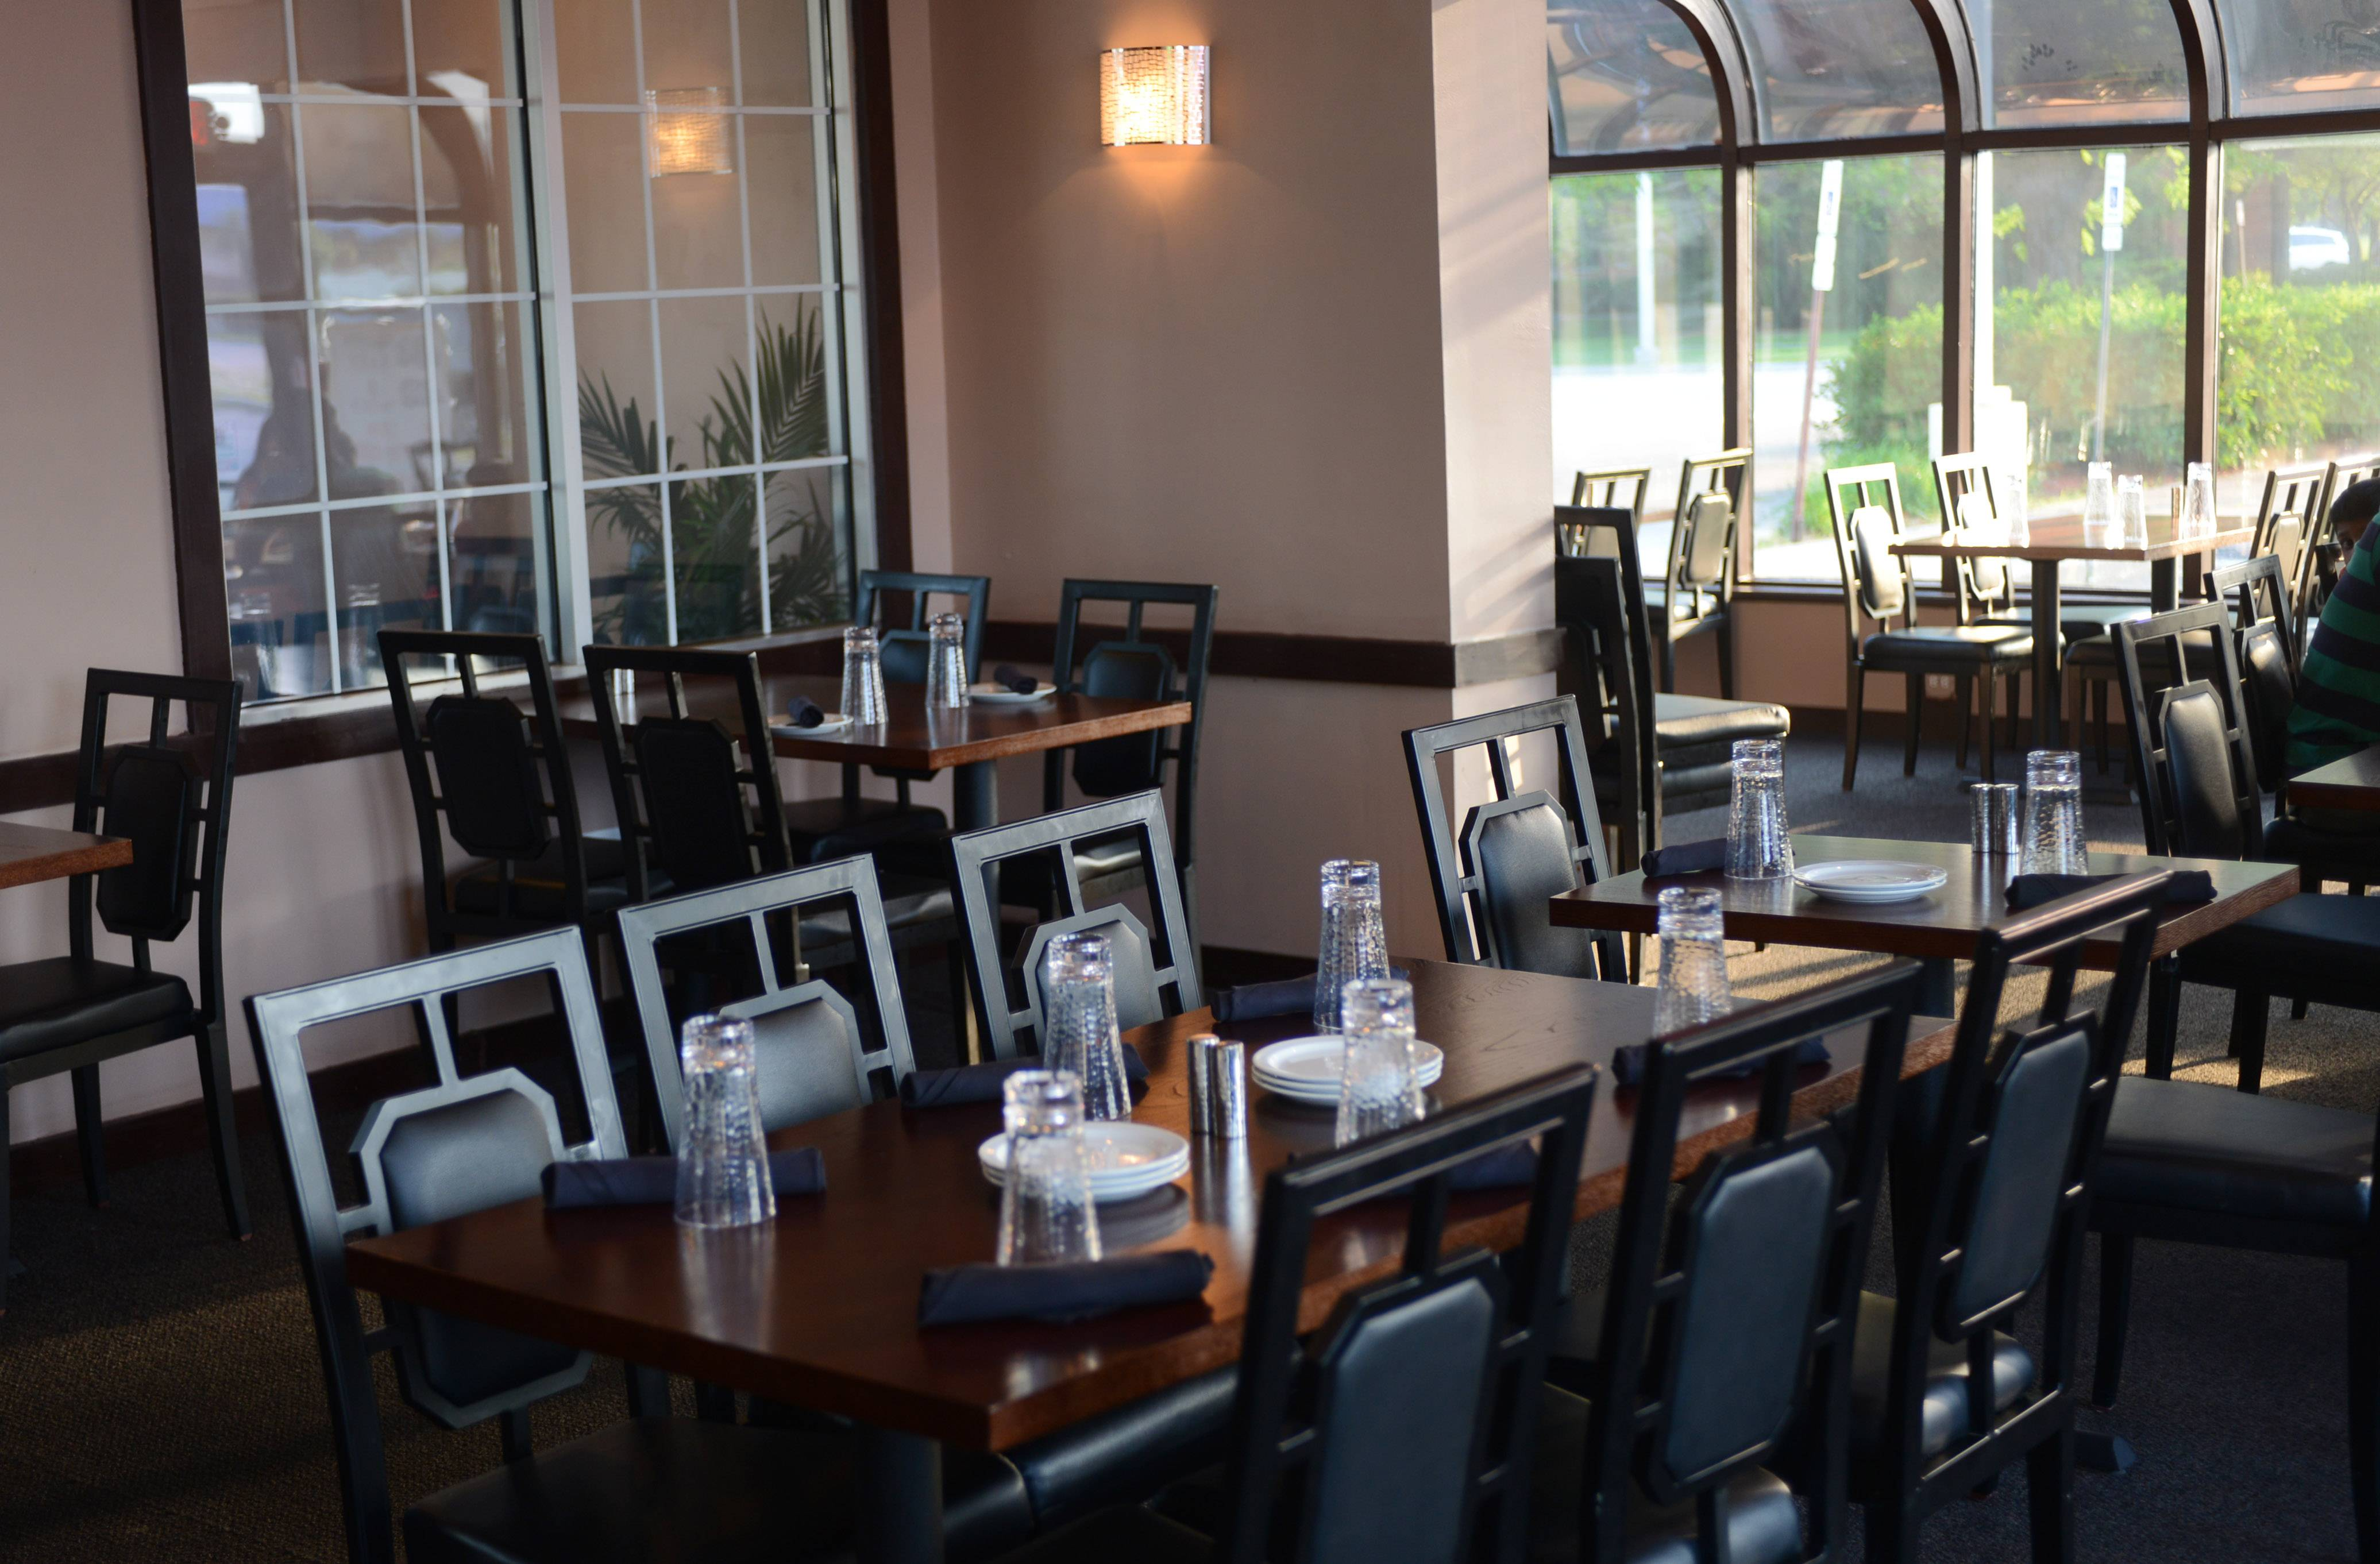 Dining space at Spice Grill in Rolling Meadows has an intimate feel, despite being roomy, with modern decor and low lighting.